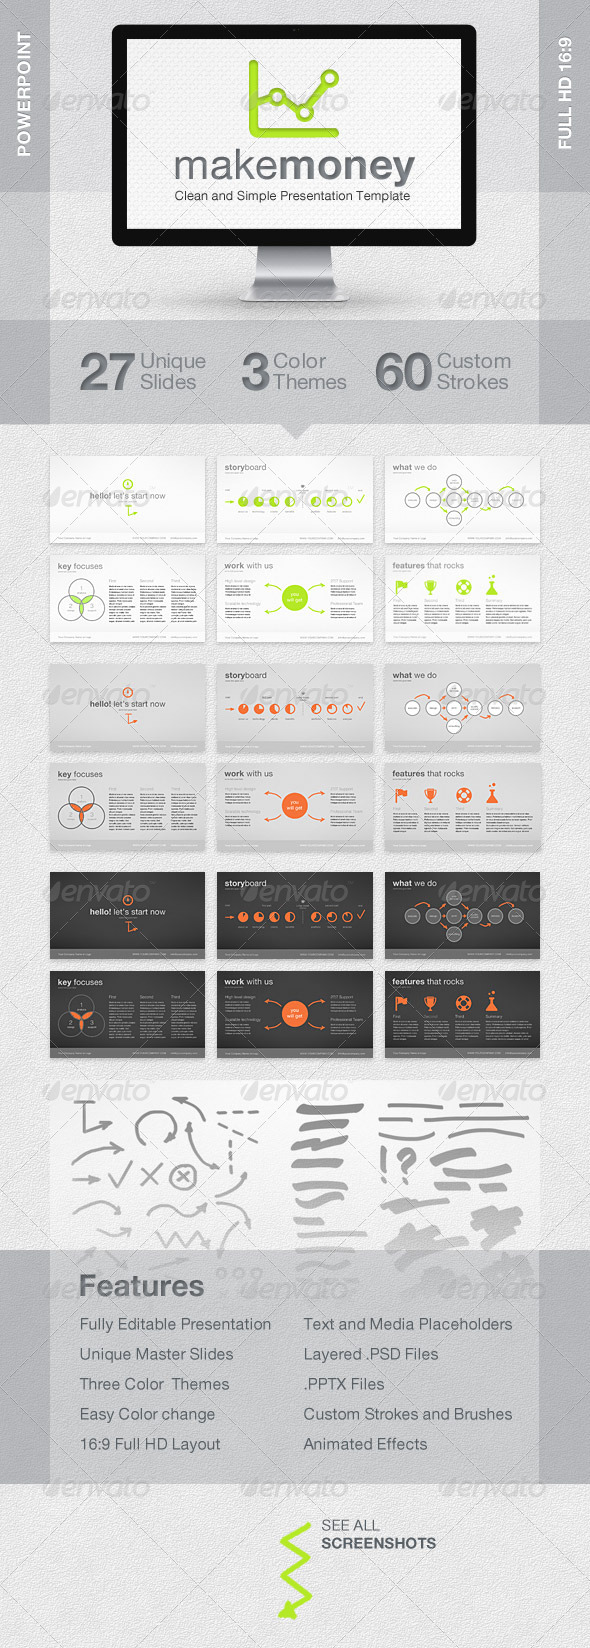 MakeMoney Powerpoint Presentation Template - Powerpoint Templates Presentation Templates